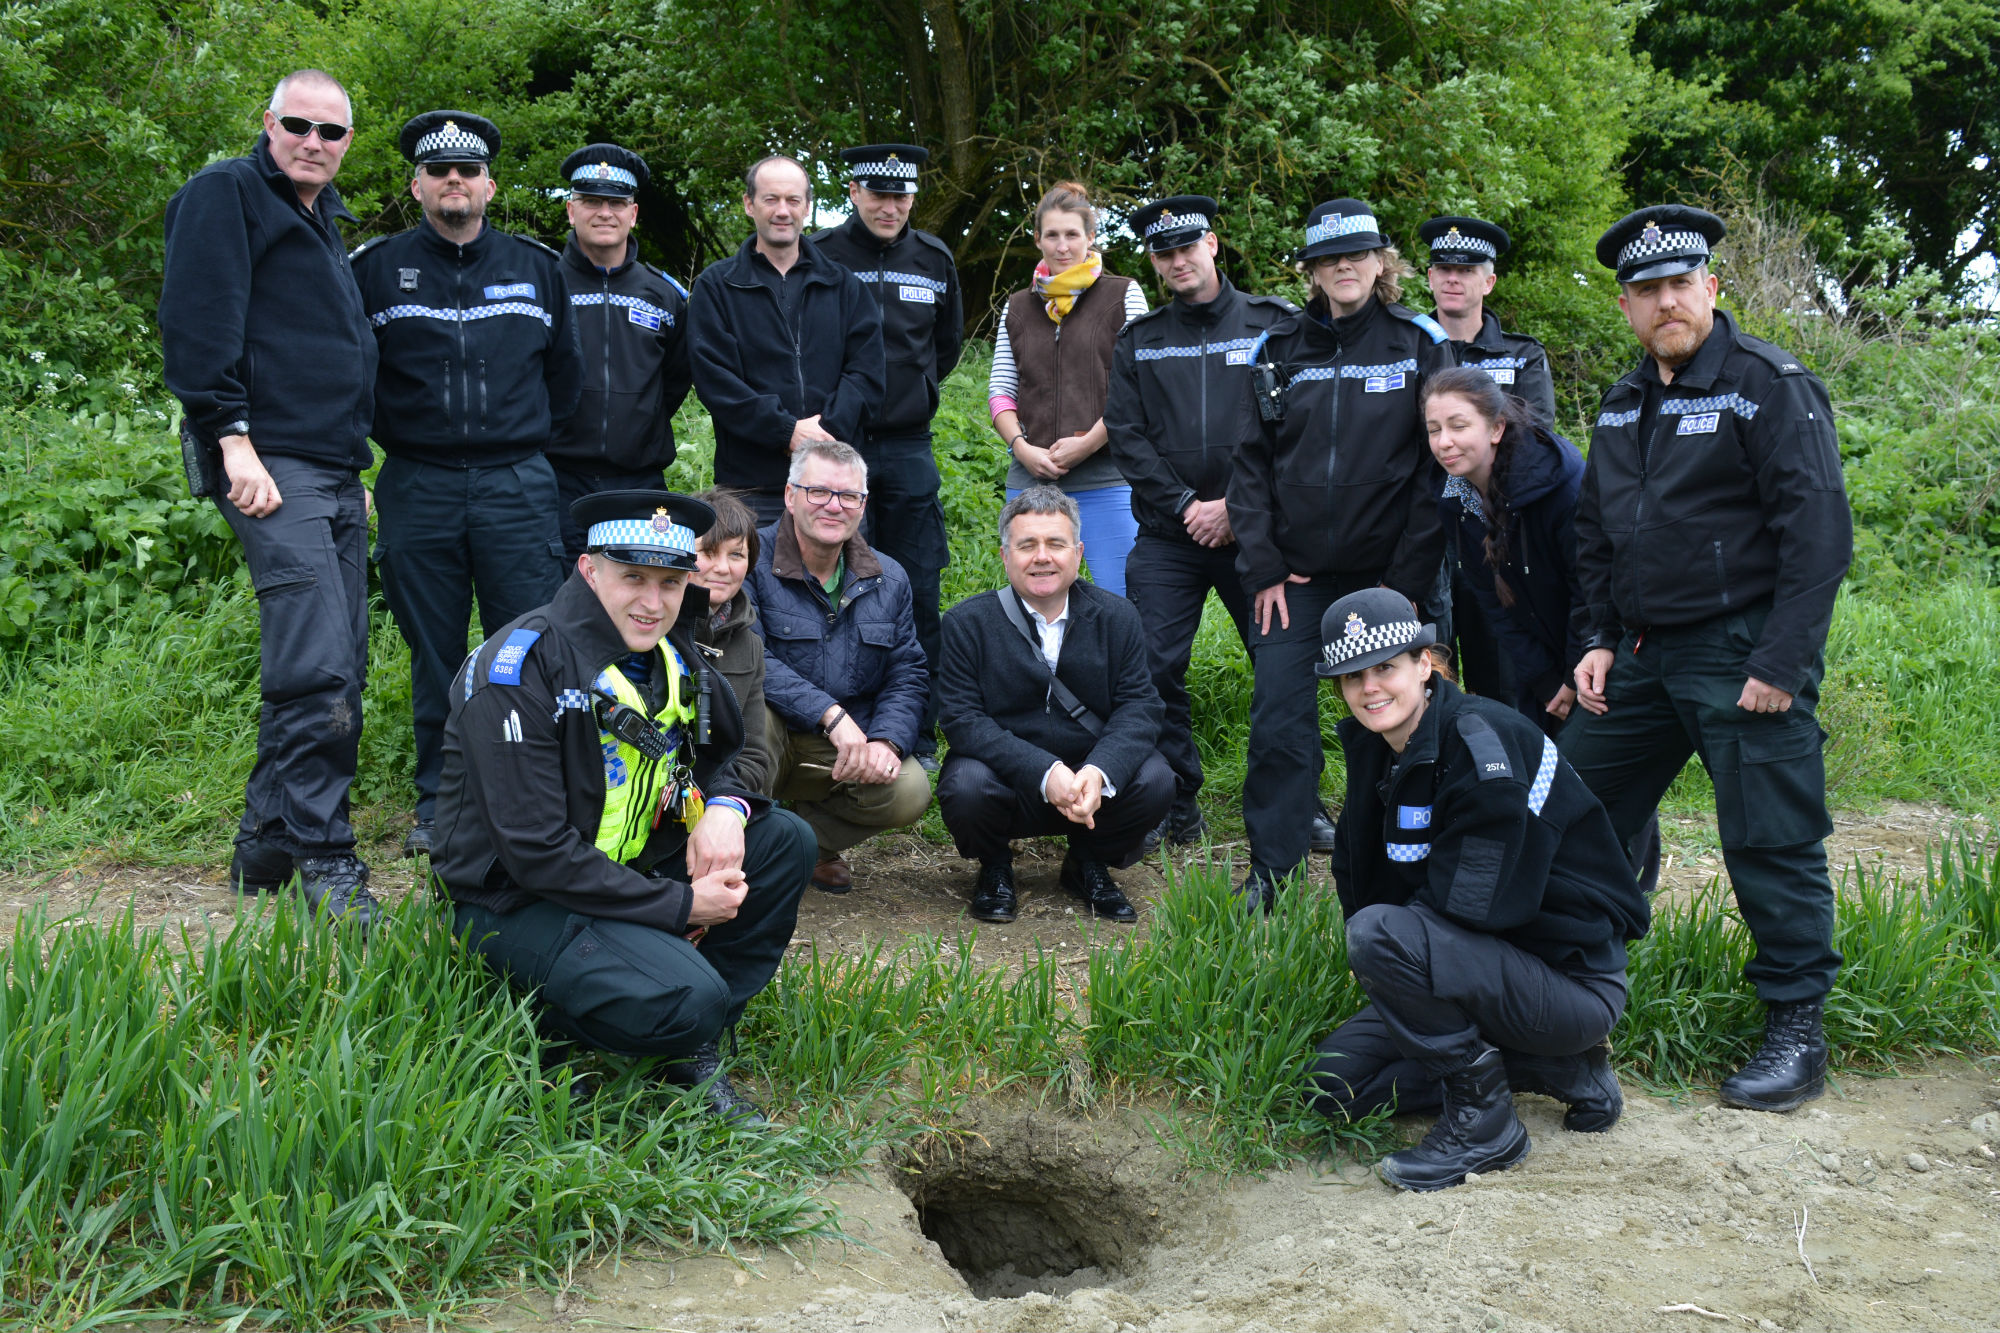 TRAINING: Dorset Police learn more about badger persecution